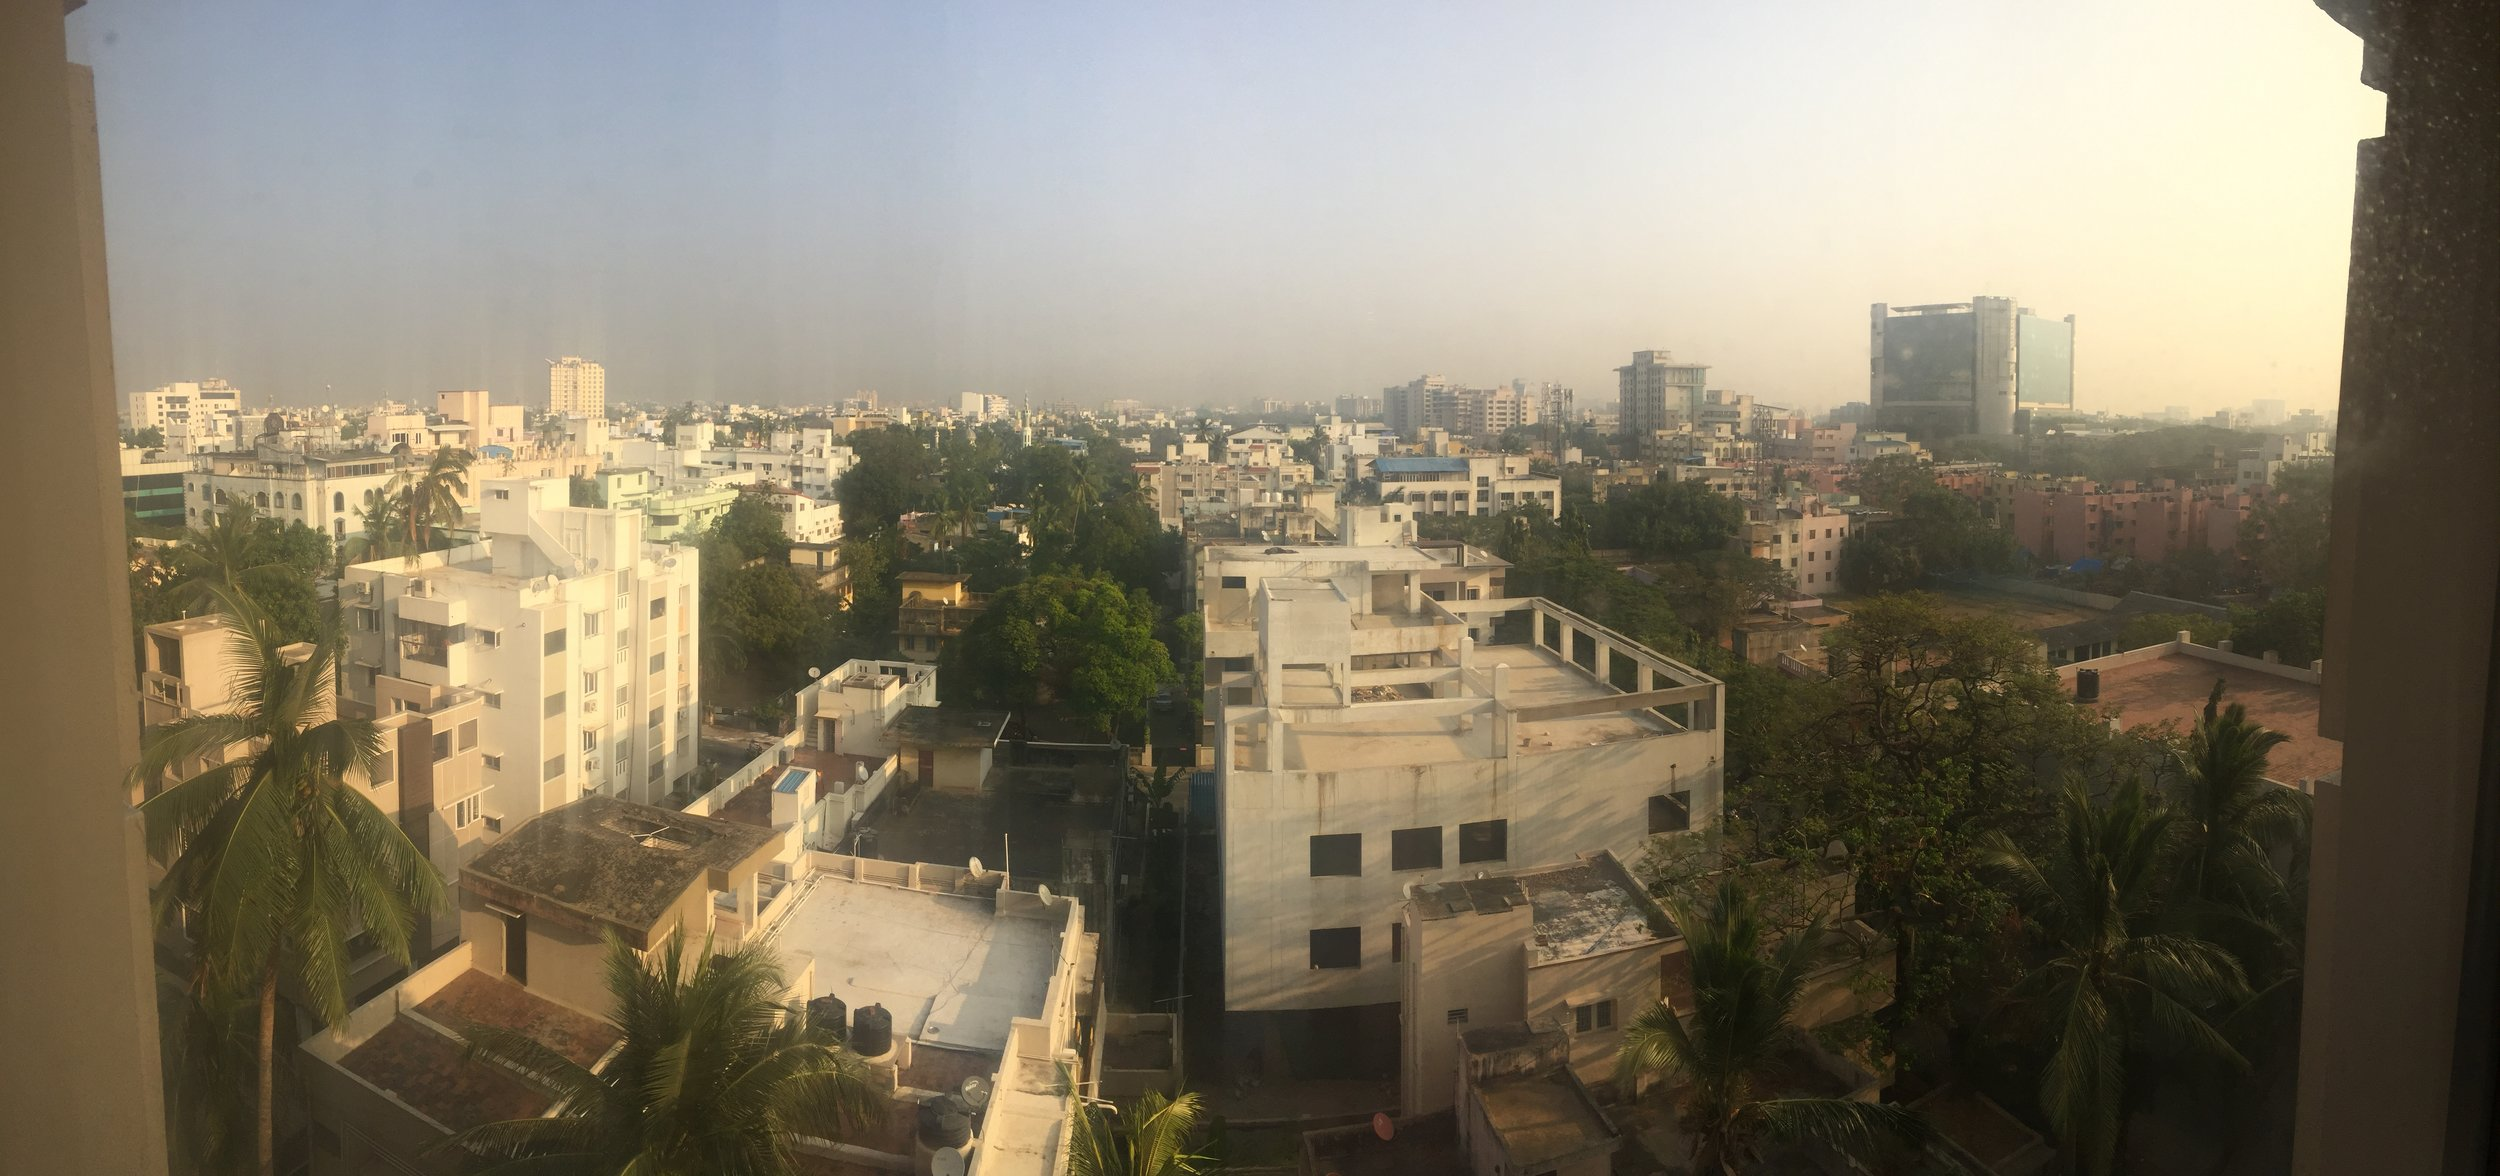 The view from our hotel in Chennai where we arrived early on the 4th day of travel and got to rest a little, showered, ate and yogaed before checking out around noon to head to Mammalapuram.